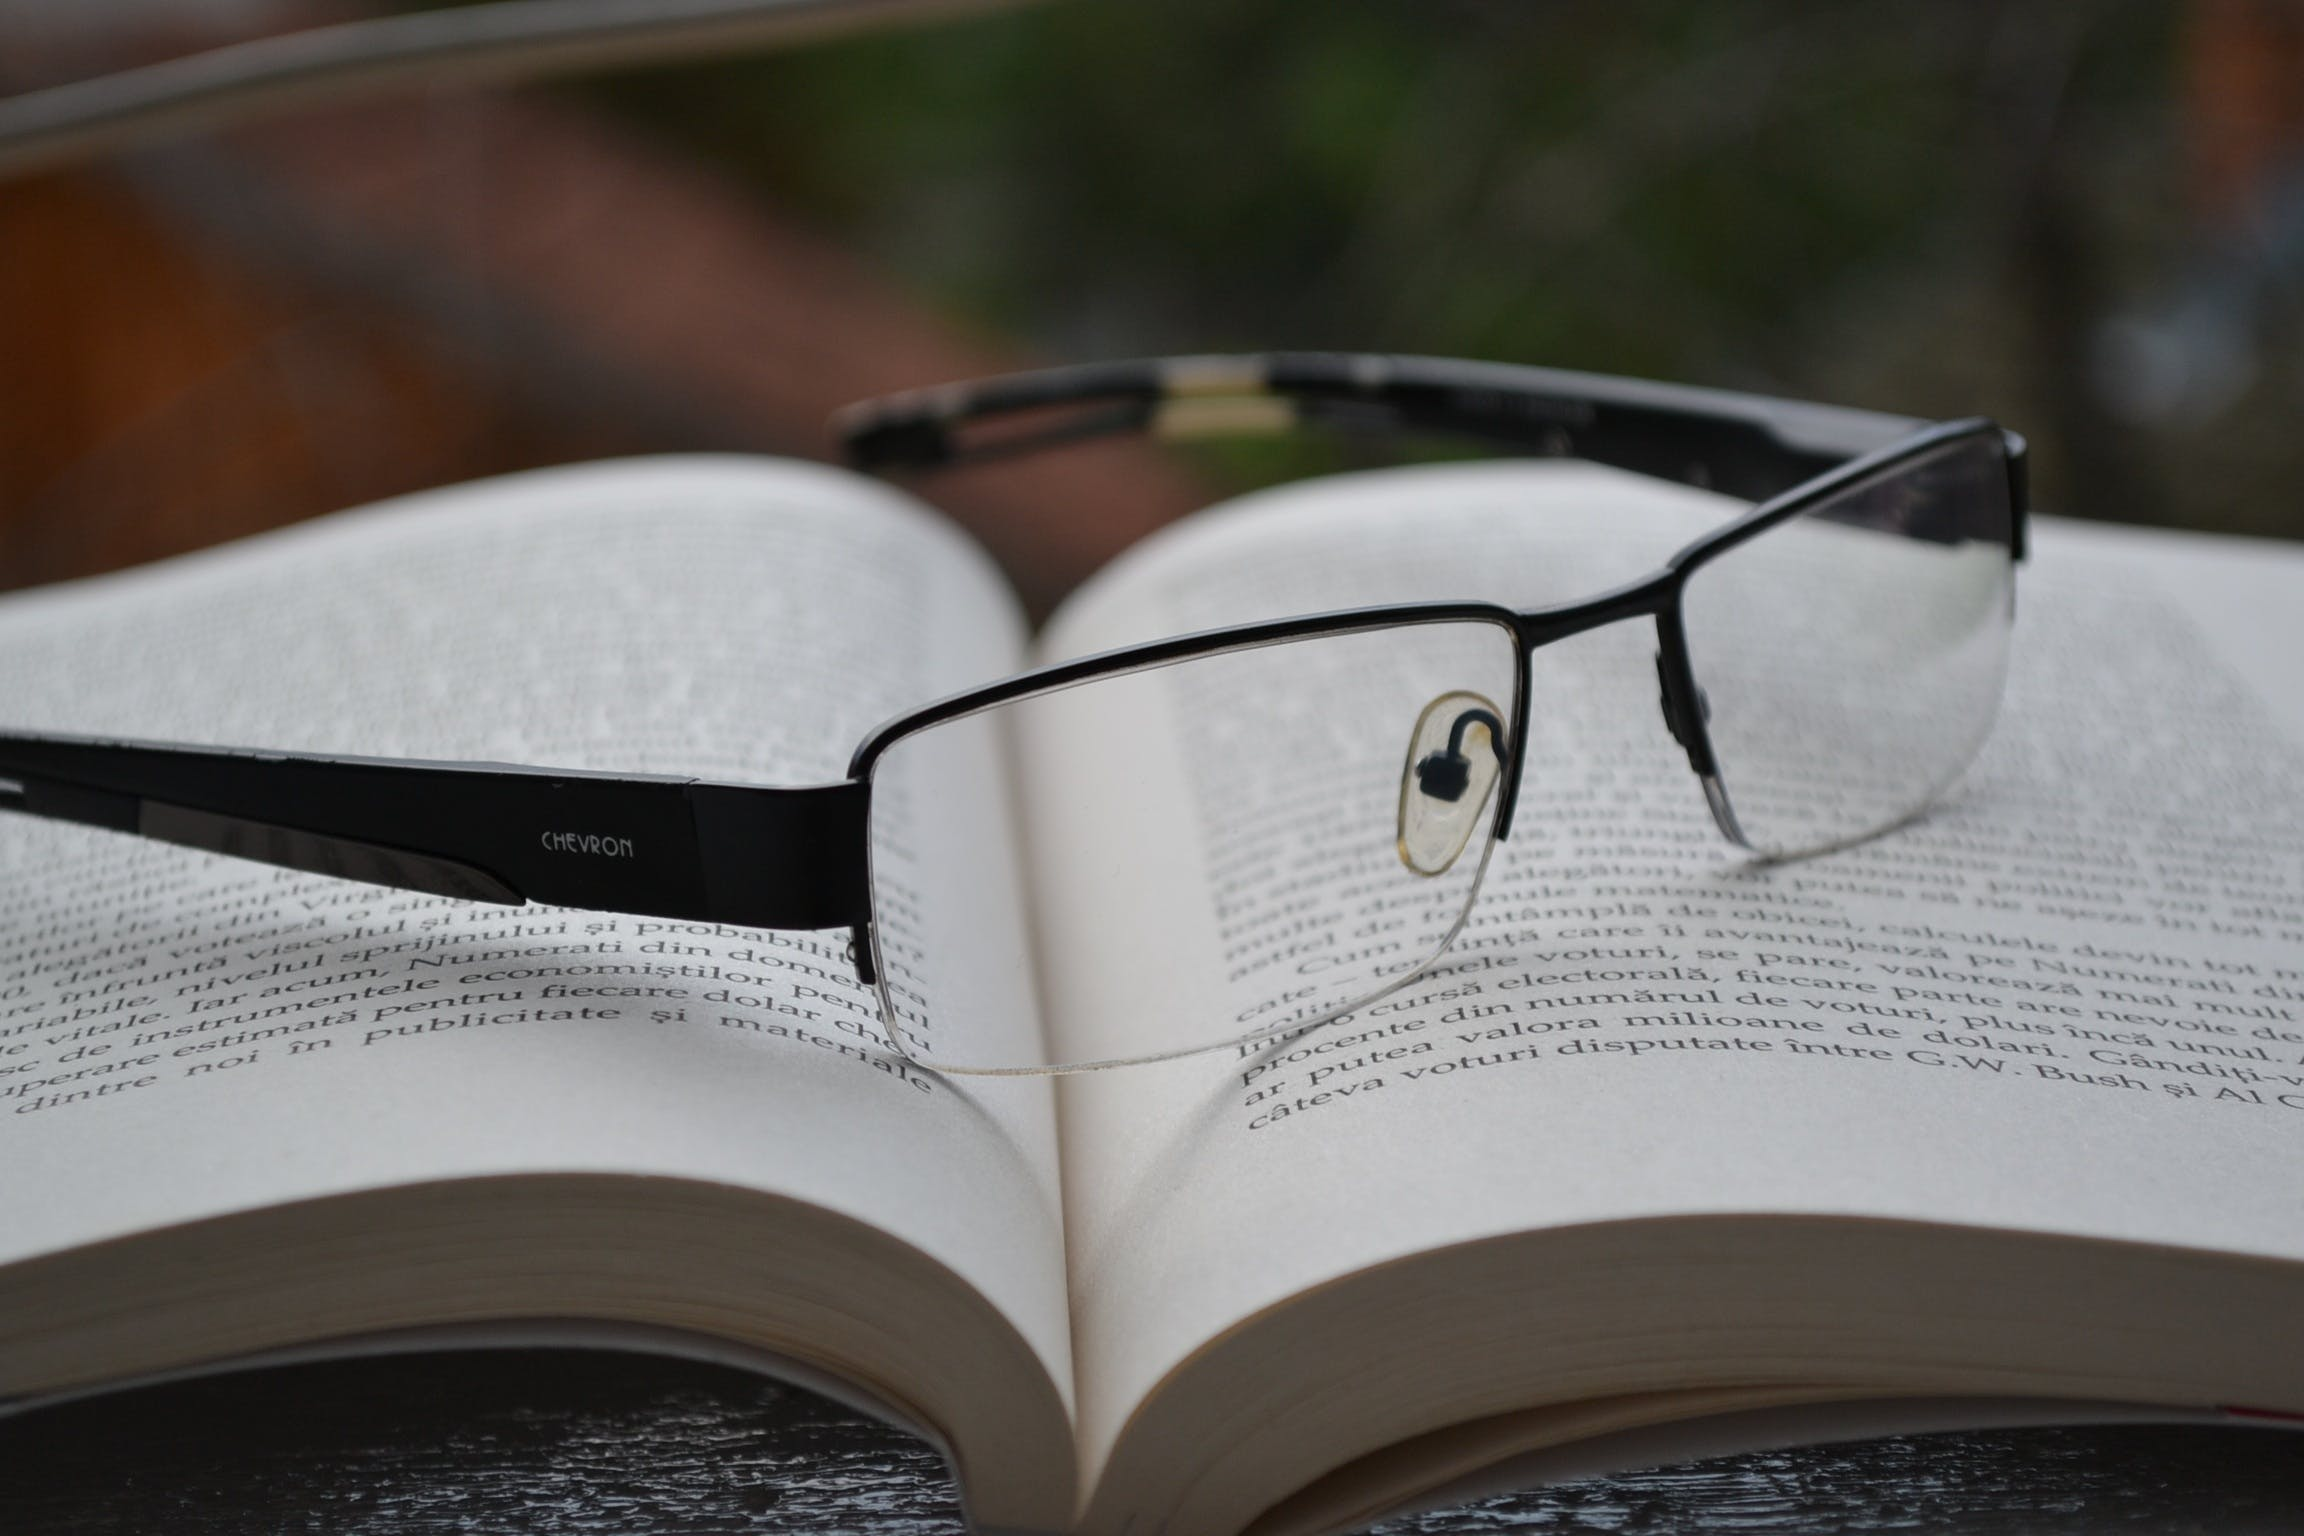 Free stock photo of school, glasses, research, book